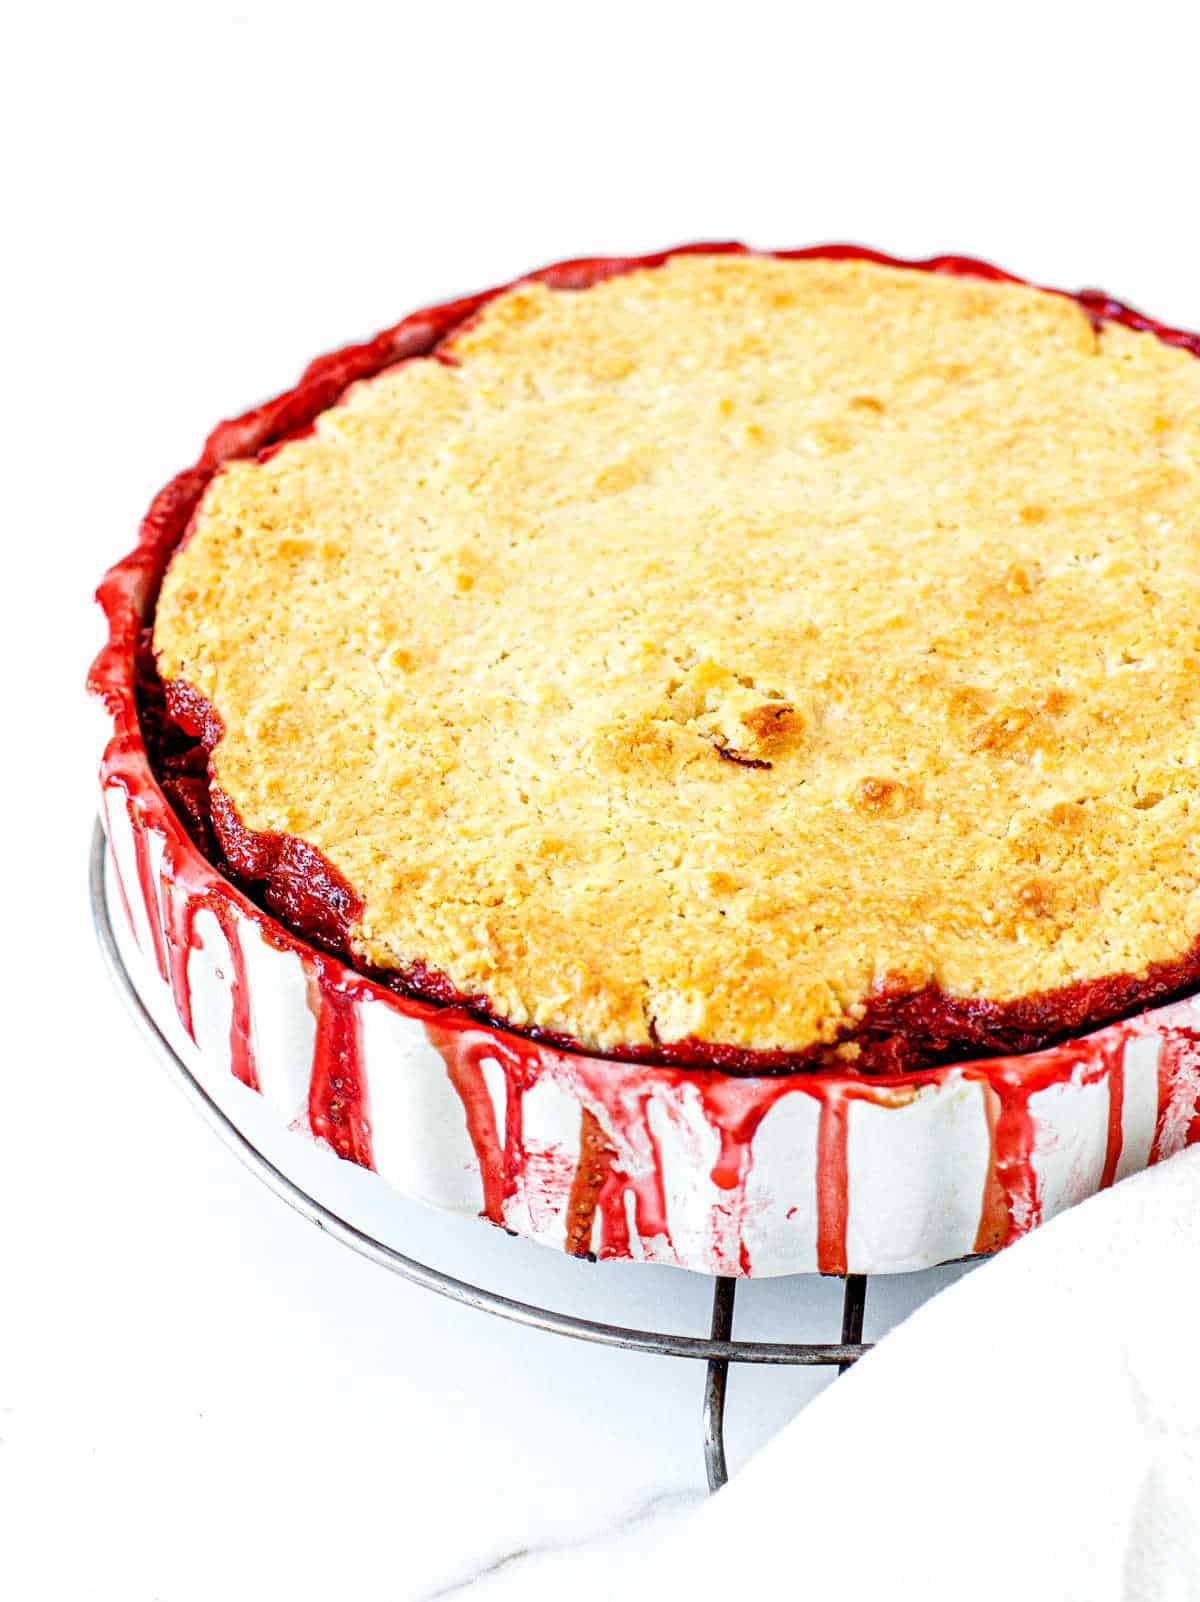 Partial view of round white dish with baked strawberry cobbler on white surface